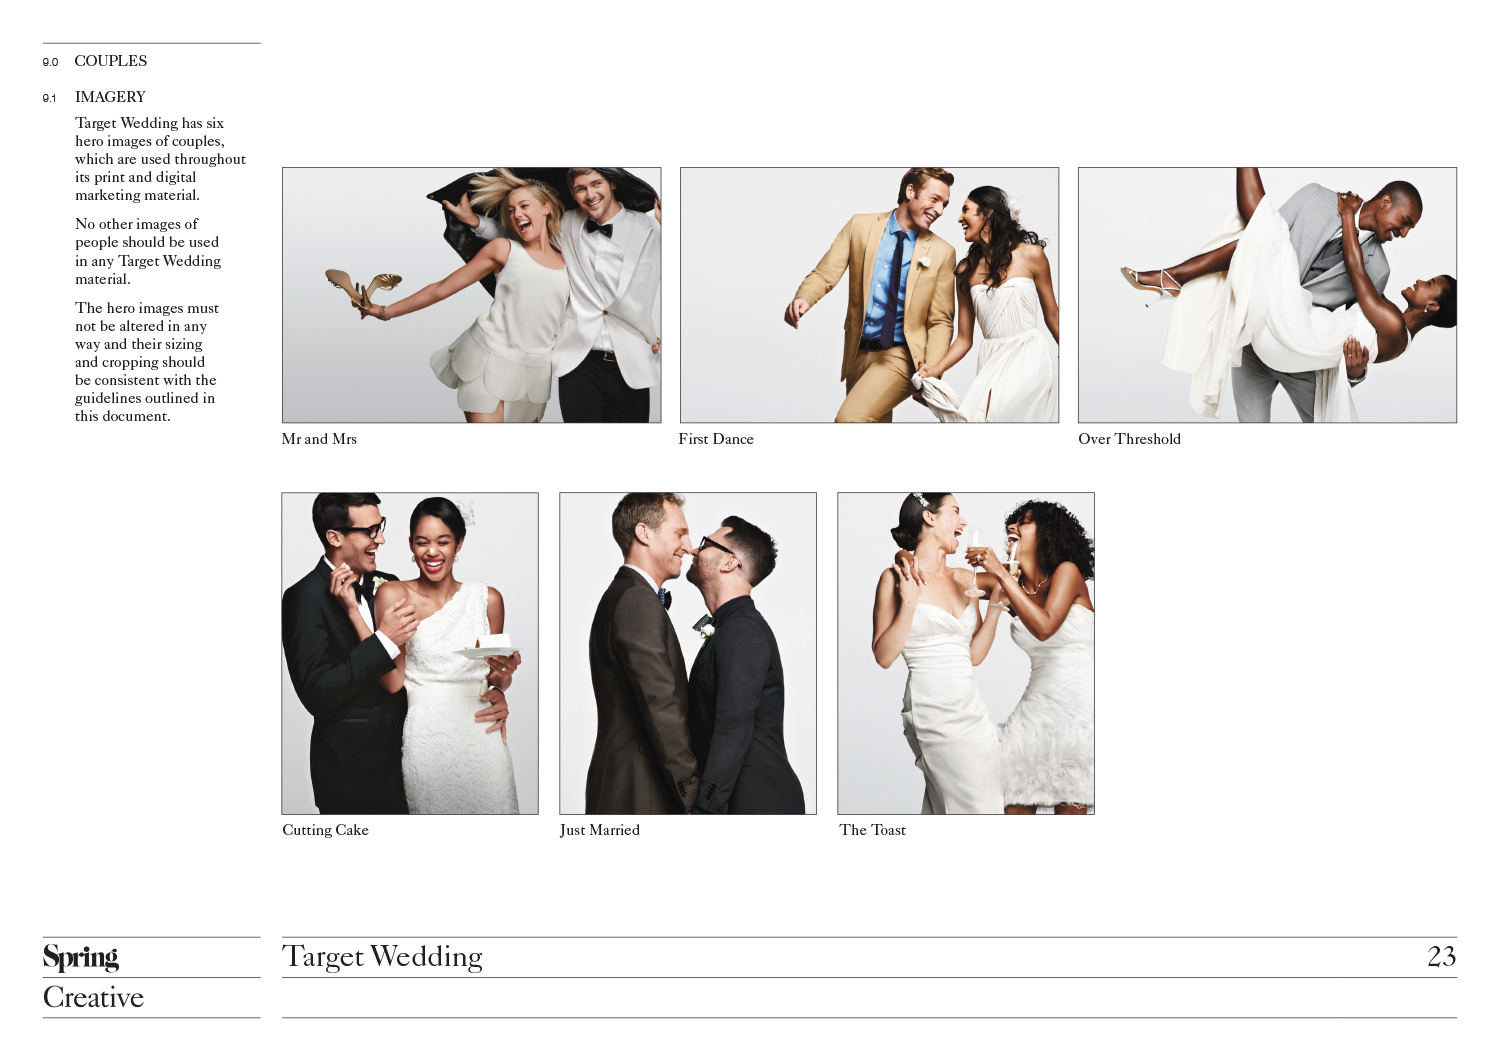 Target Wedding | Target Wedding Campaign Guidelines Nigel Parsons Design